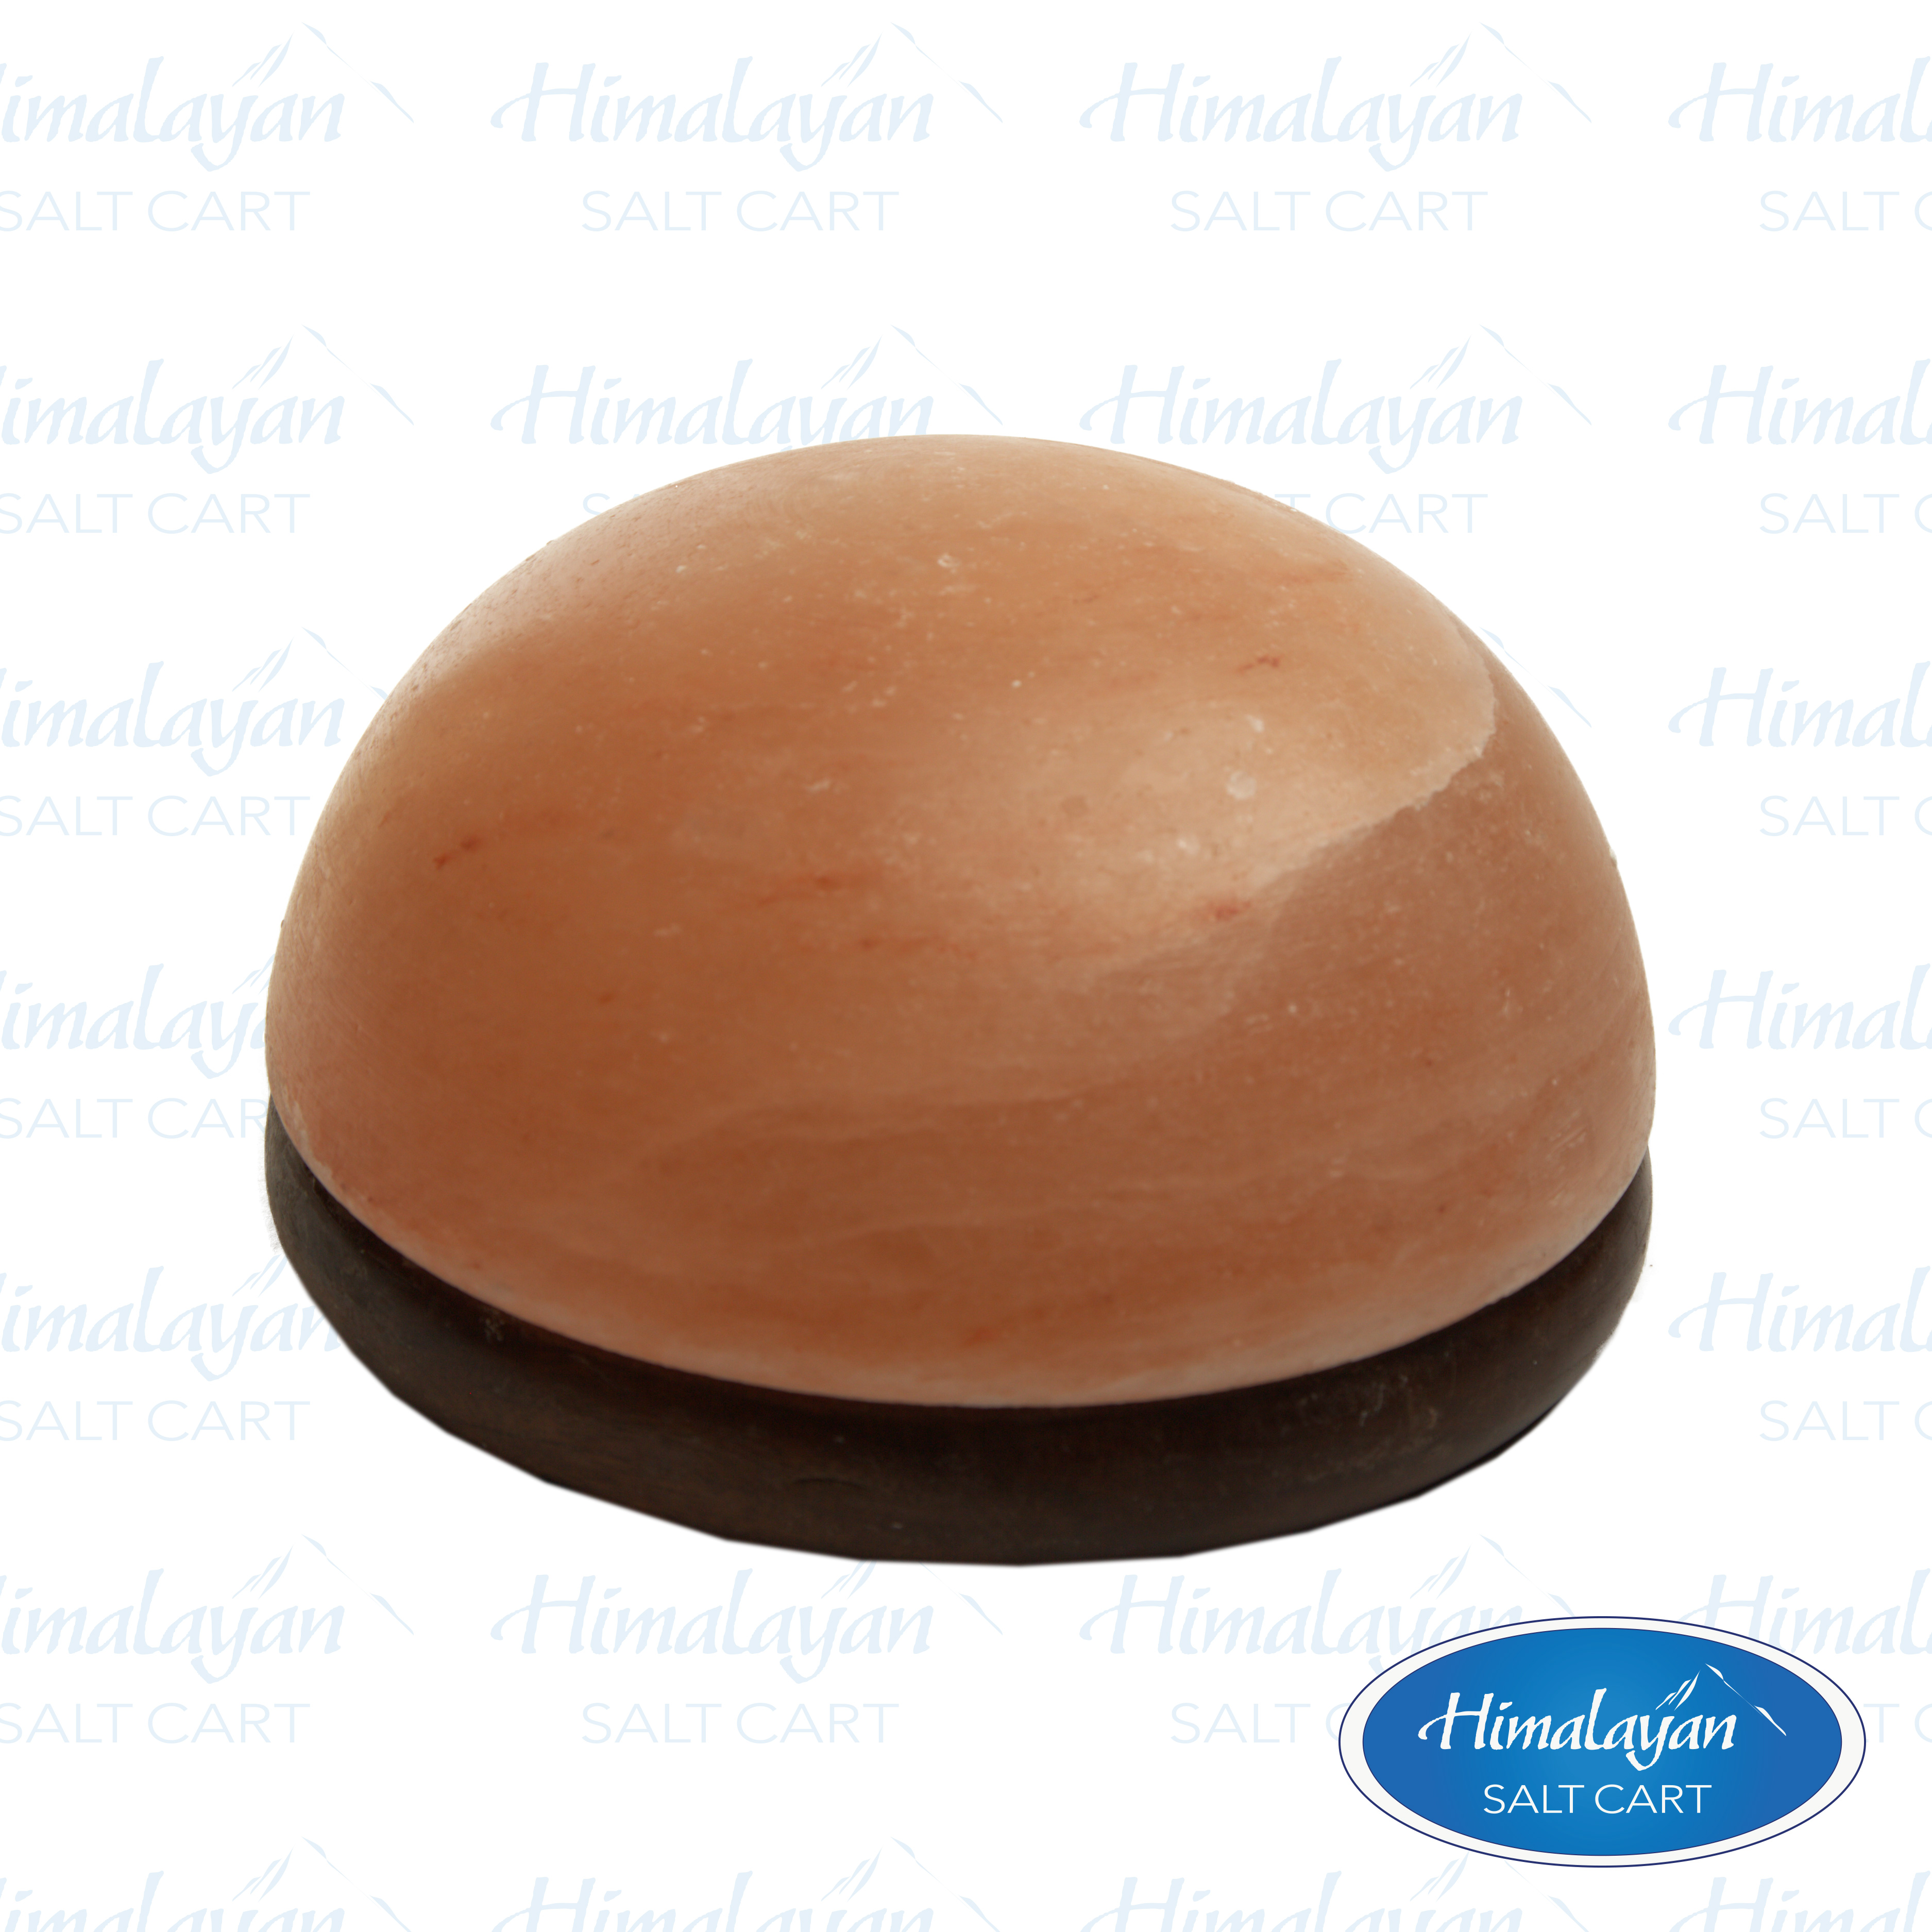 Himalayan Salt Foot Therapy Dome/Full Case/2